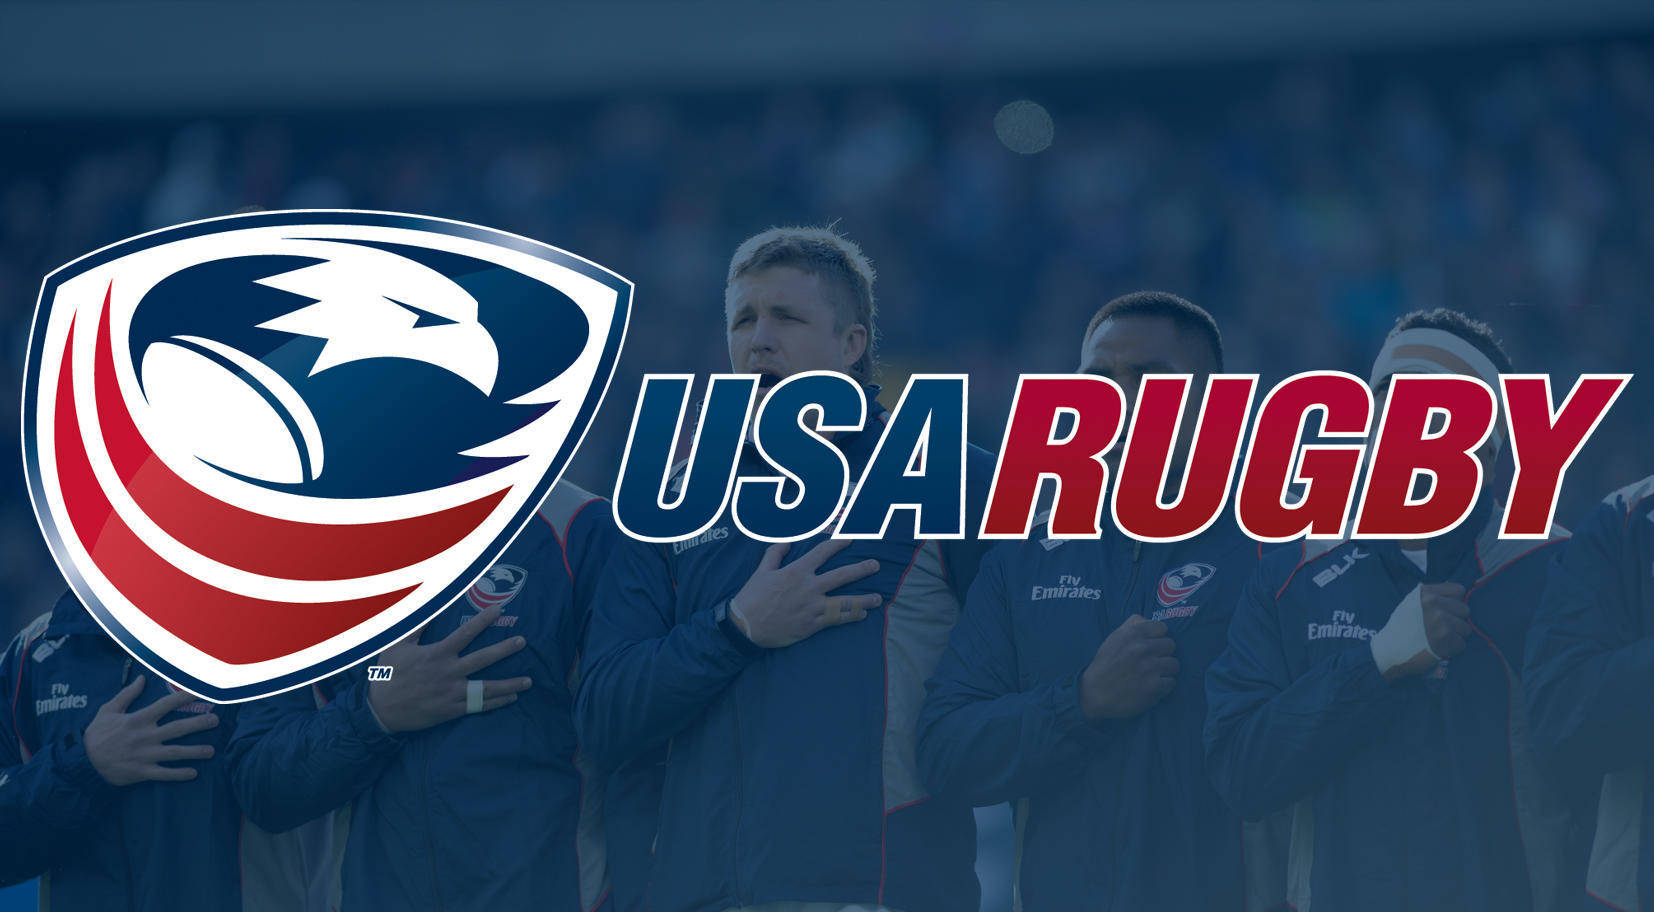 USA Rugby: Player welfare paramount when sanctioning matches